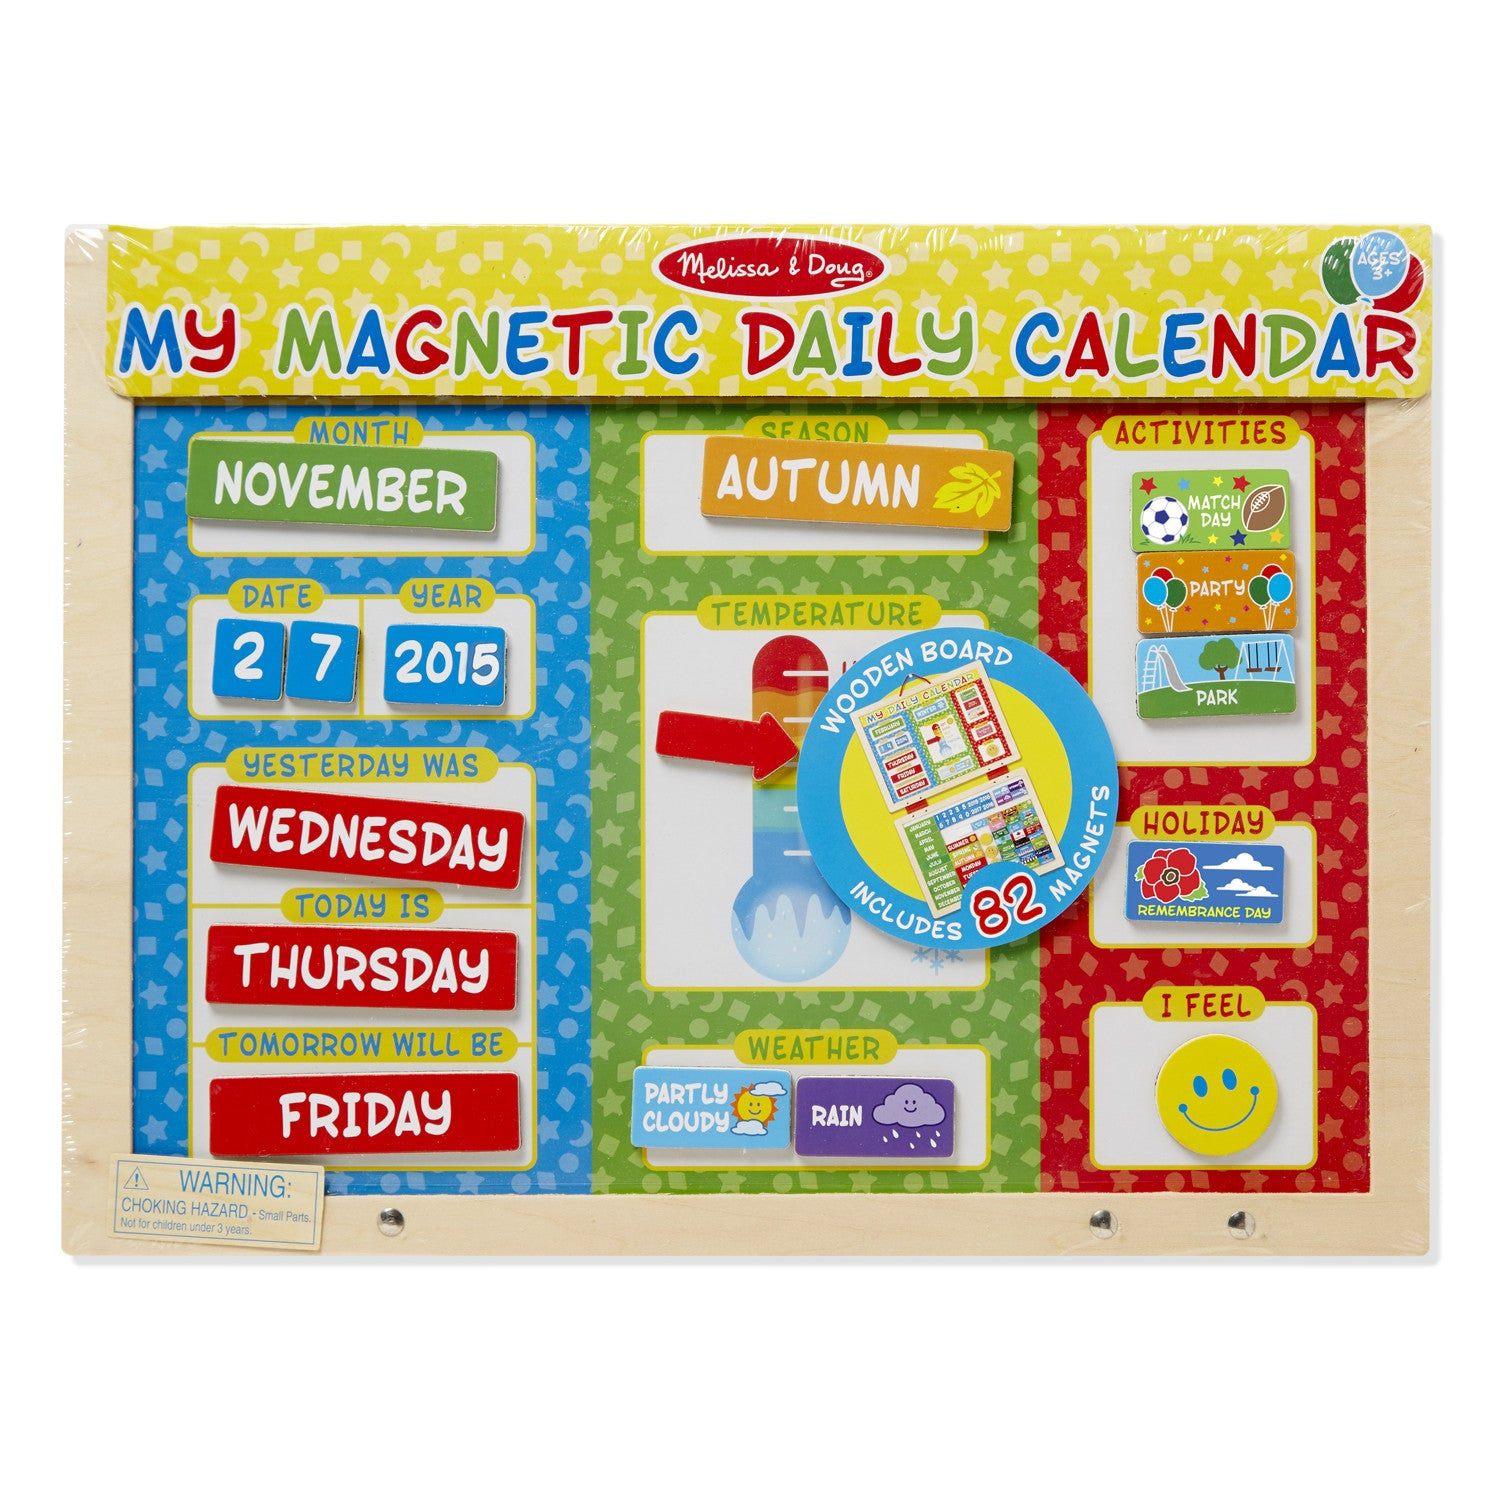 My Daily Magnetic Calendar